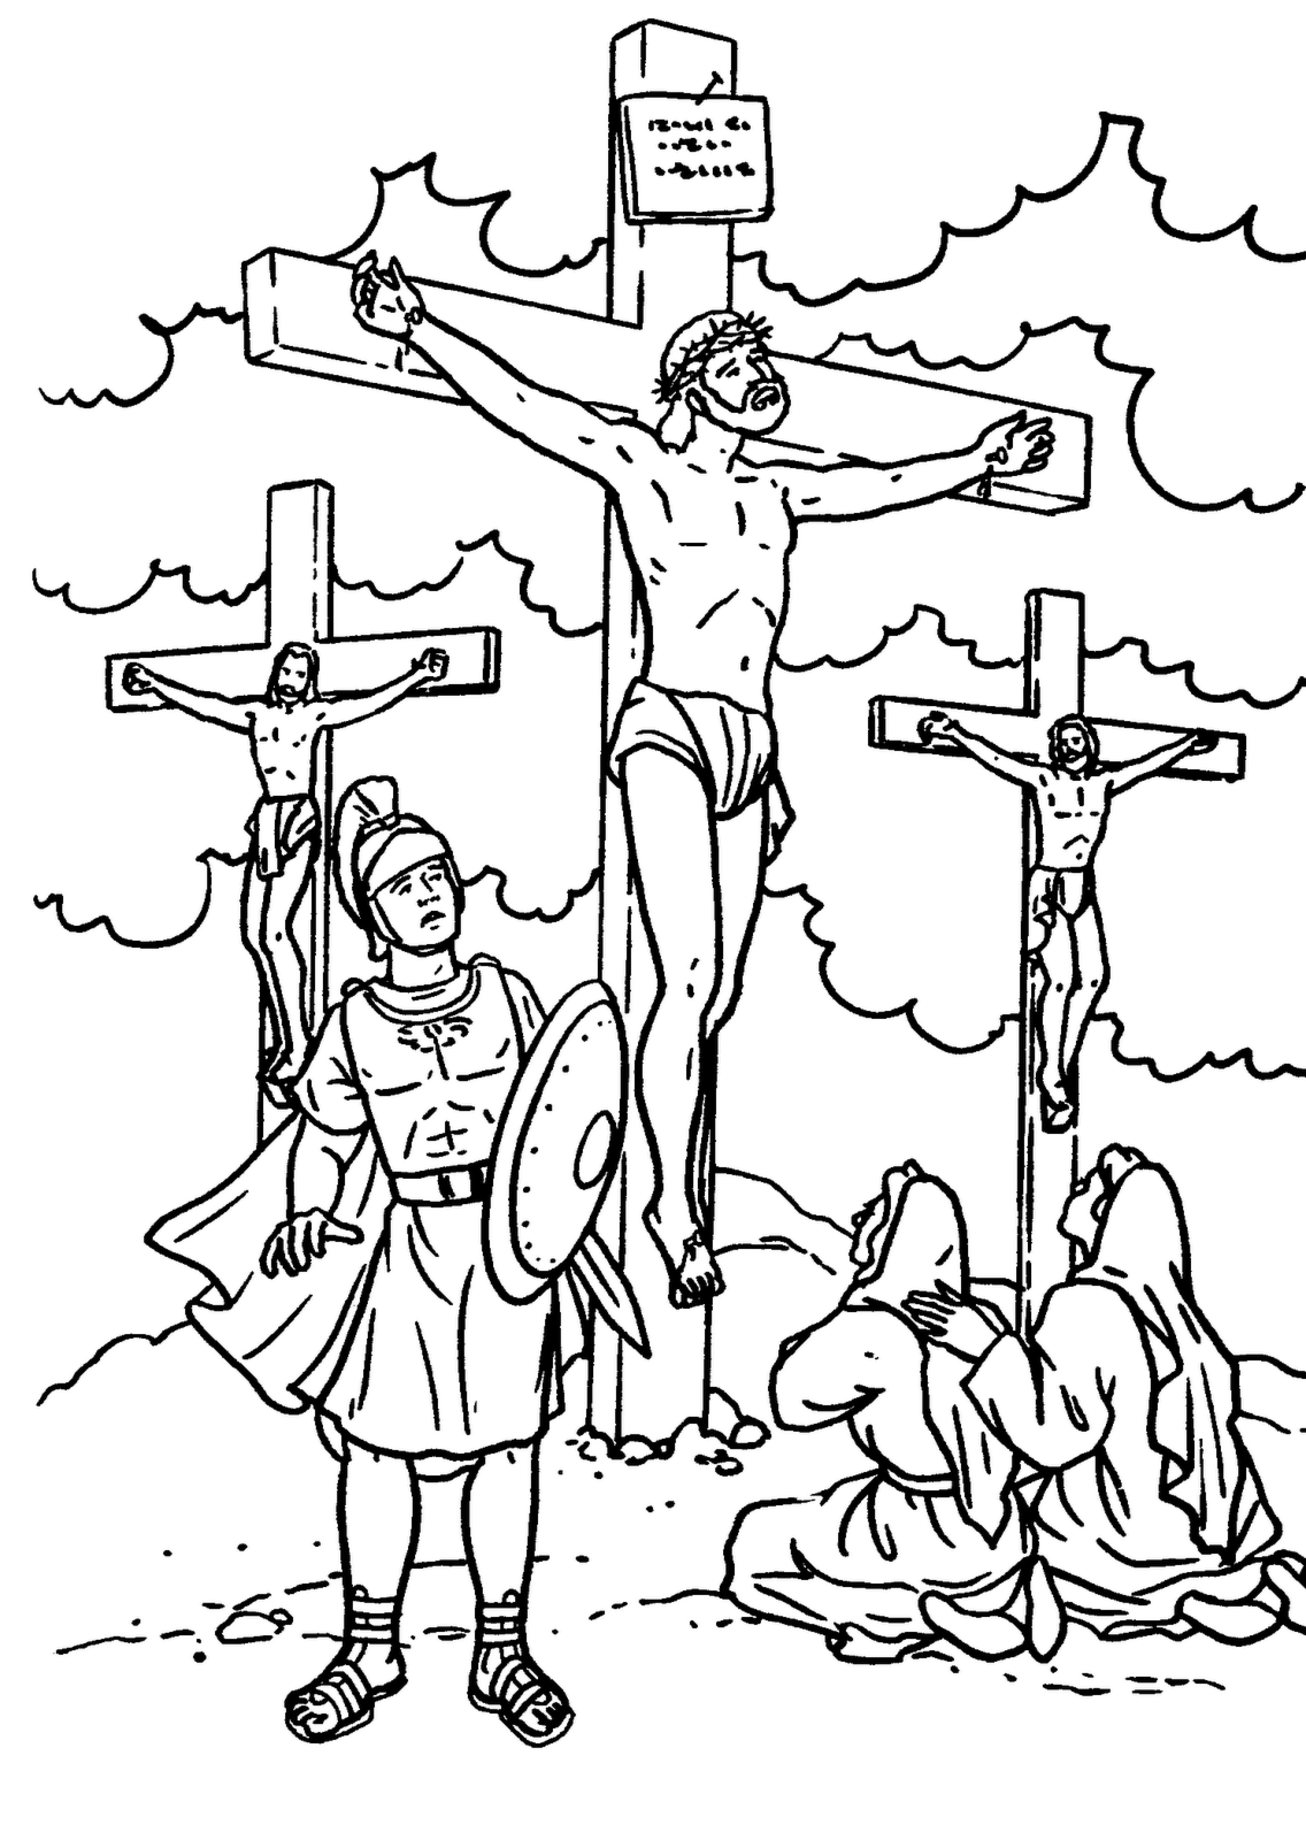 Crucifixion Coloring Pages at GetDrawings.com | Free for ...